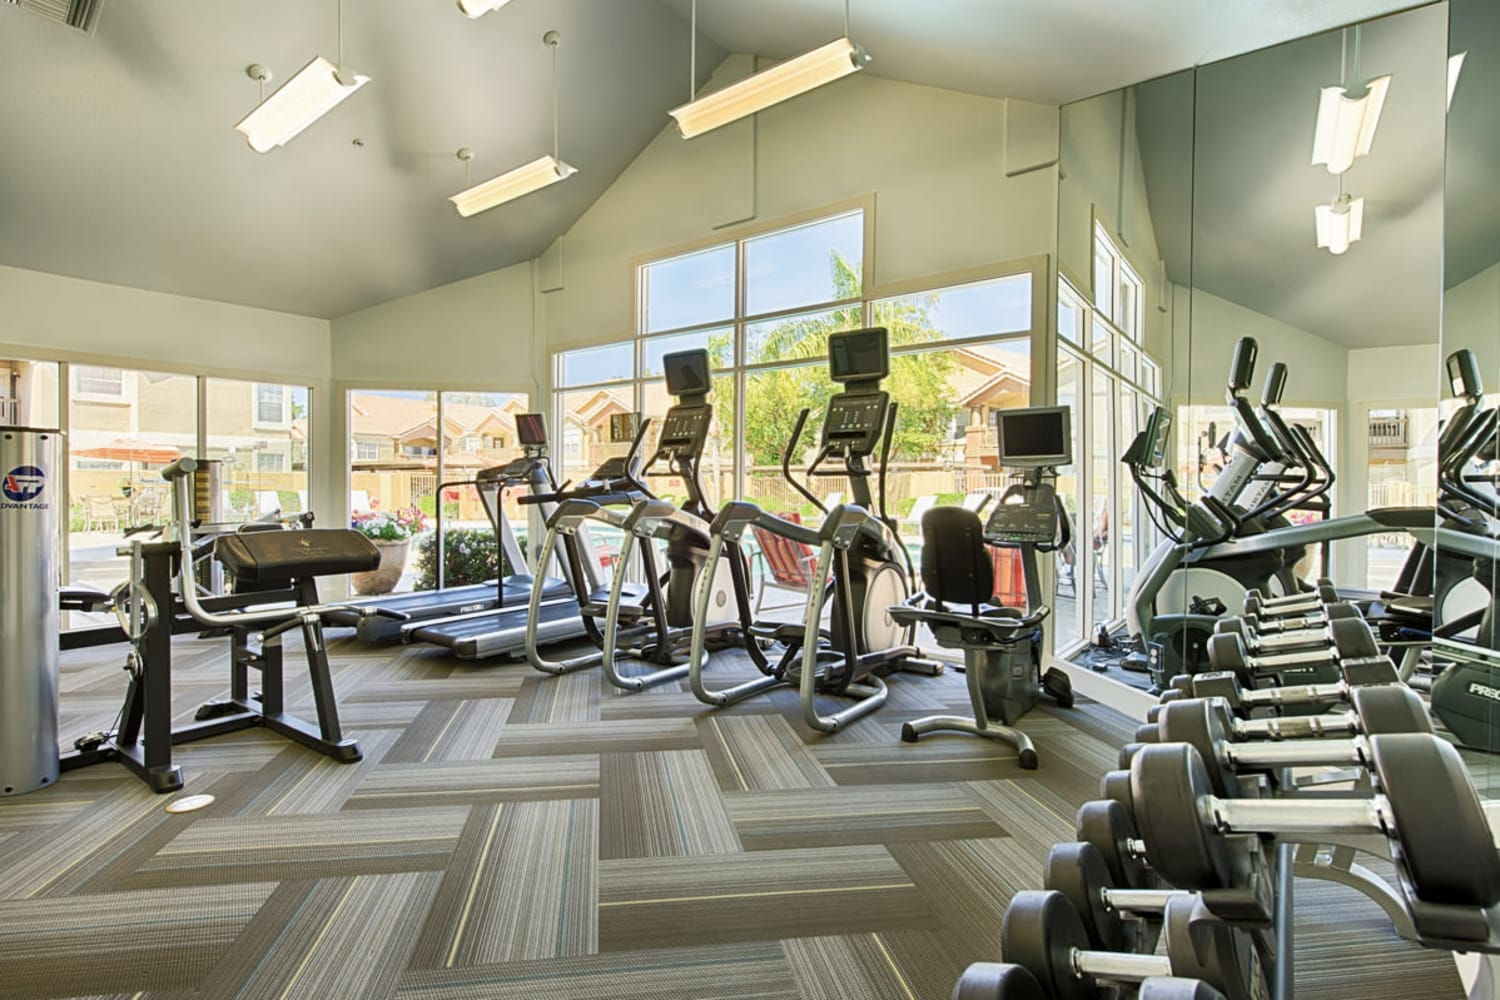 Sonoran Vista Apartments in Scottsdale, Arizona, offer a fully equipped fitness center